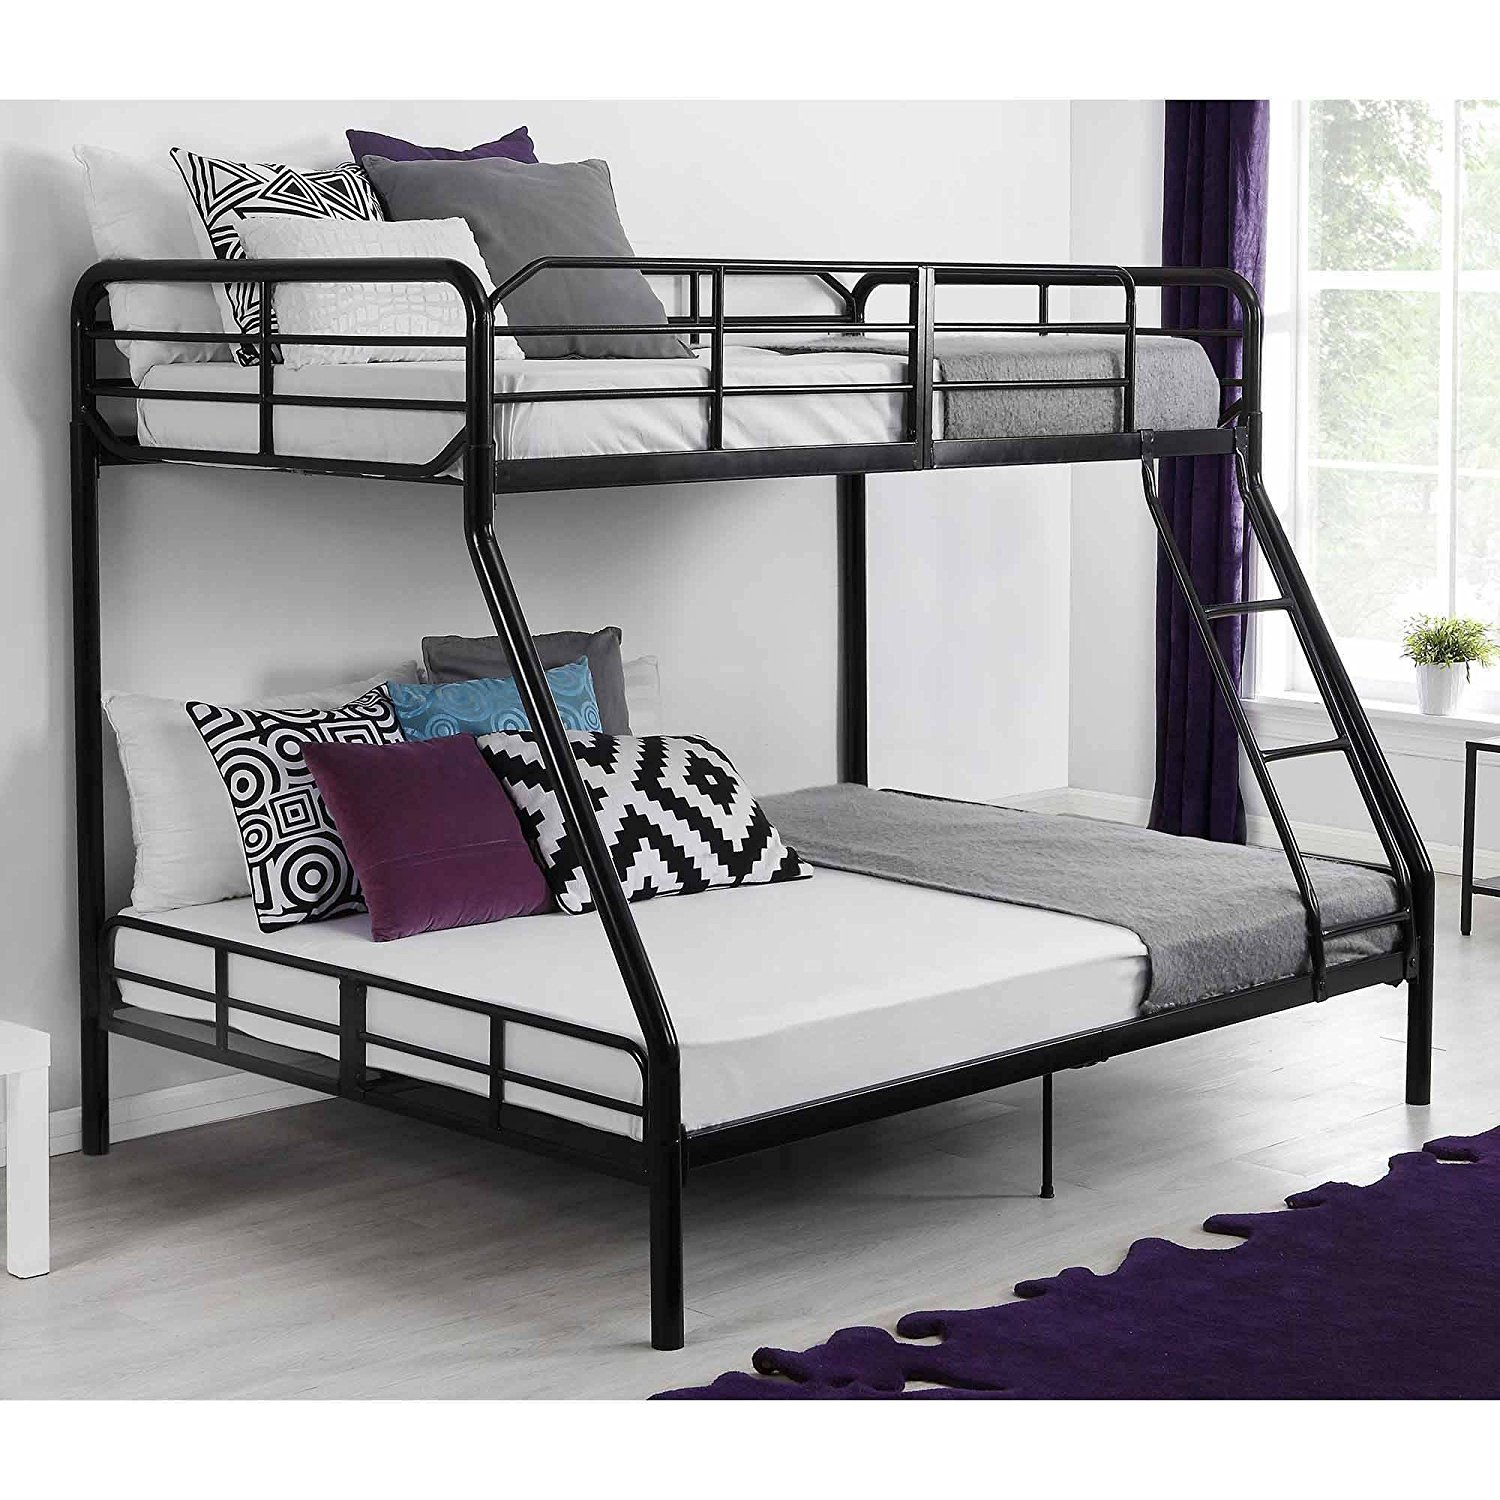 Twin Over Full Bunk Bed Kids Teens Bedroom Dorm Furniture Metal Beds Bunkbeds with Ladder Black by Mainstays